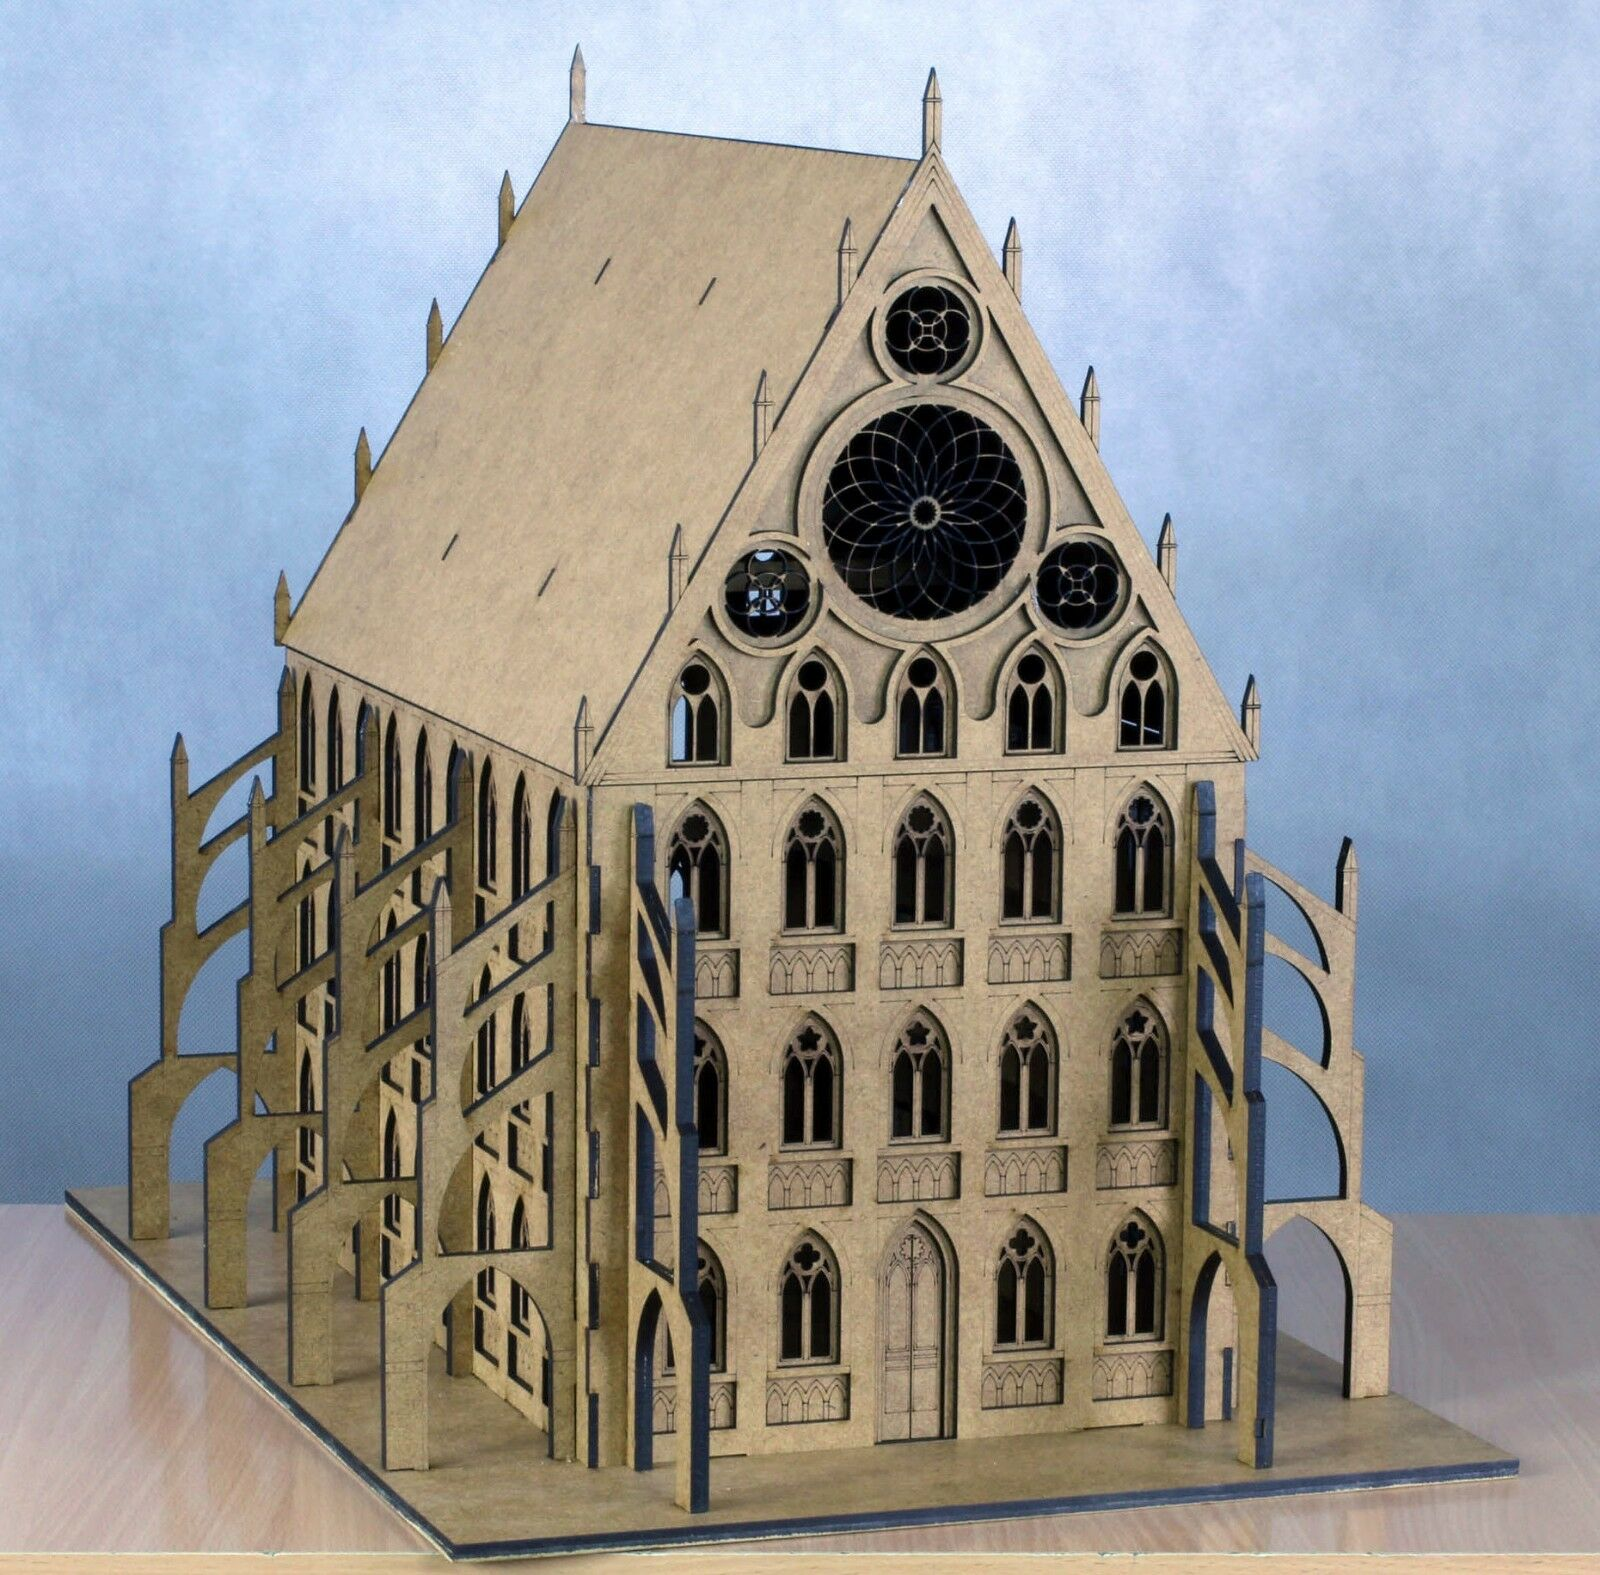 GOTHIC BUILDING - CATHEDRAL - Laser Cut Wargaming Scenery 28mm W40K Bolt Action